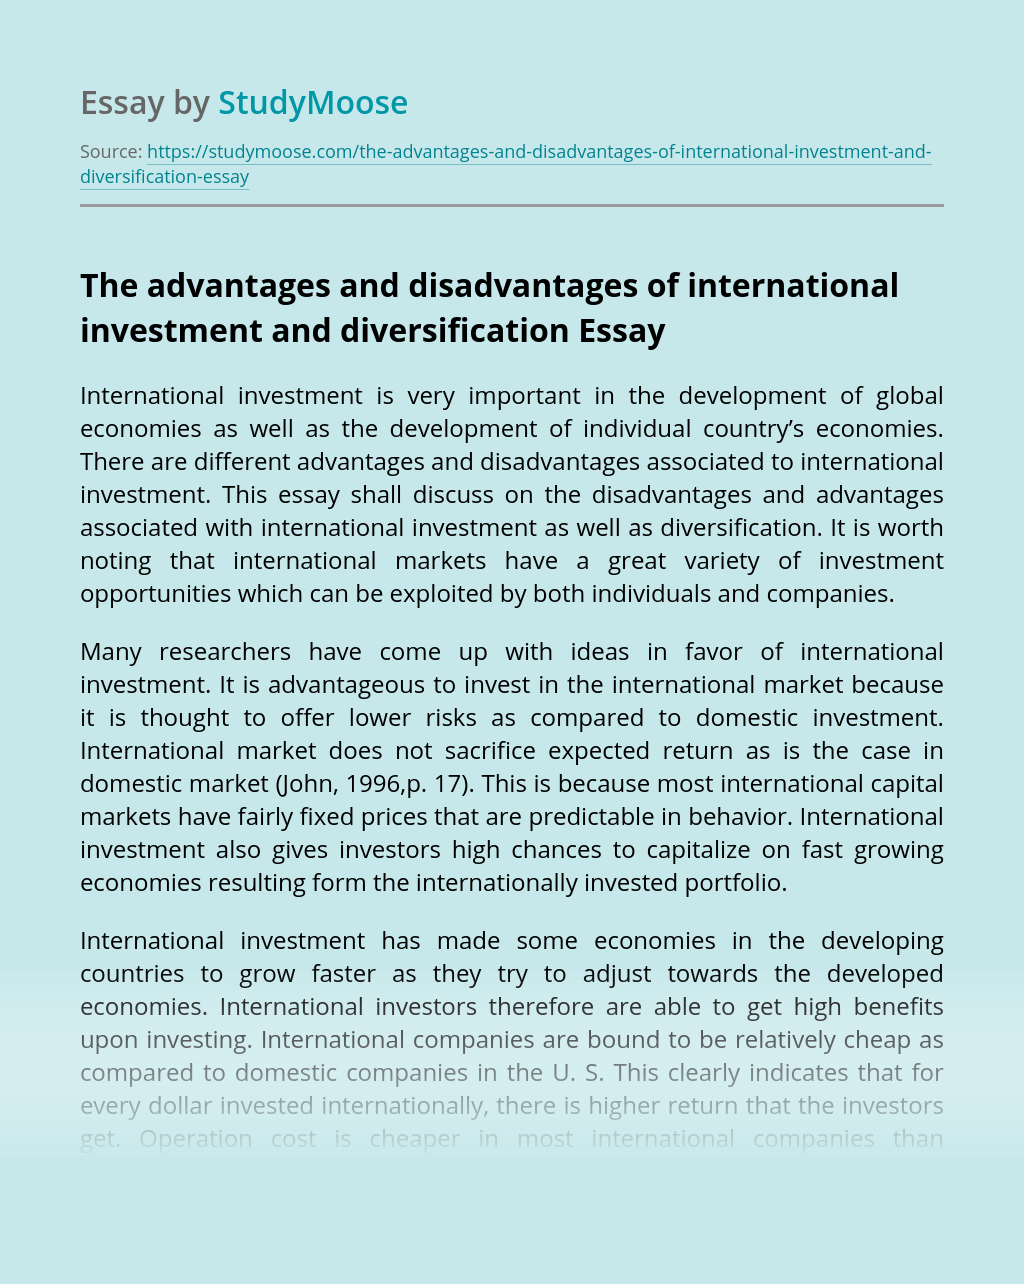 The advantages and disadvantages of international investment and diversification